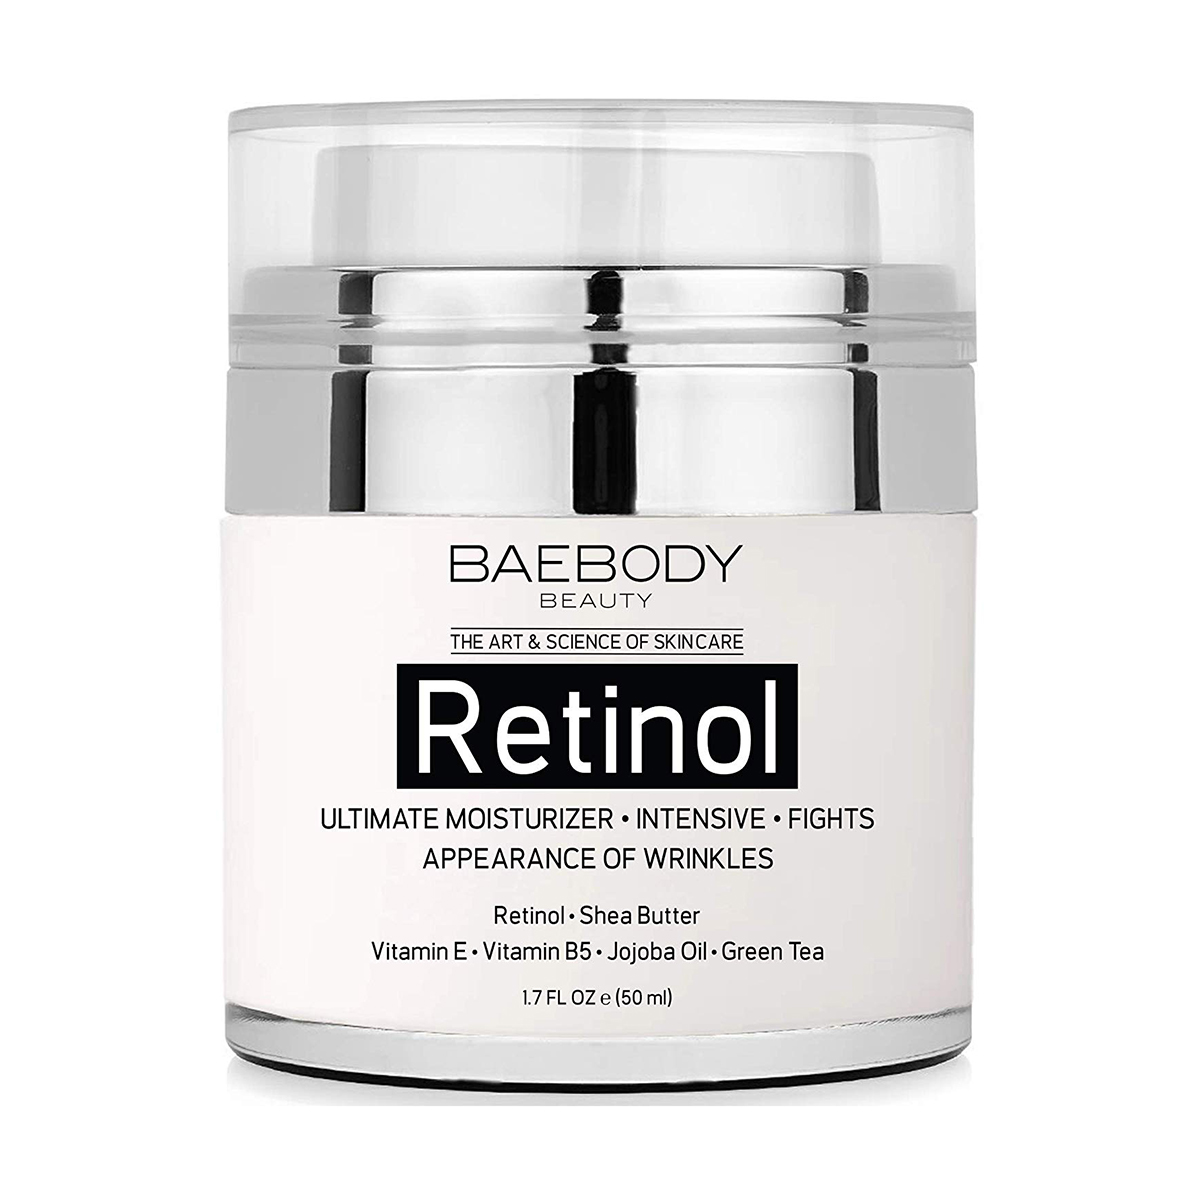 Anti Aging Night Cream Homemade the best anti-aging products, according to thousands | real